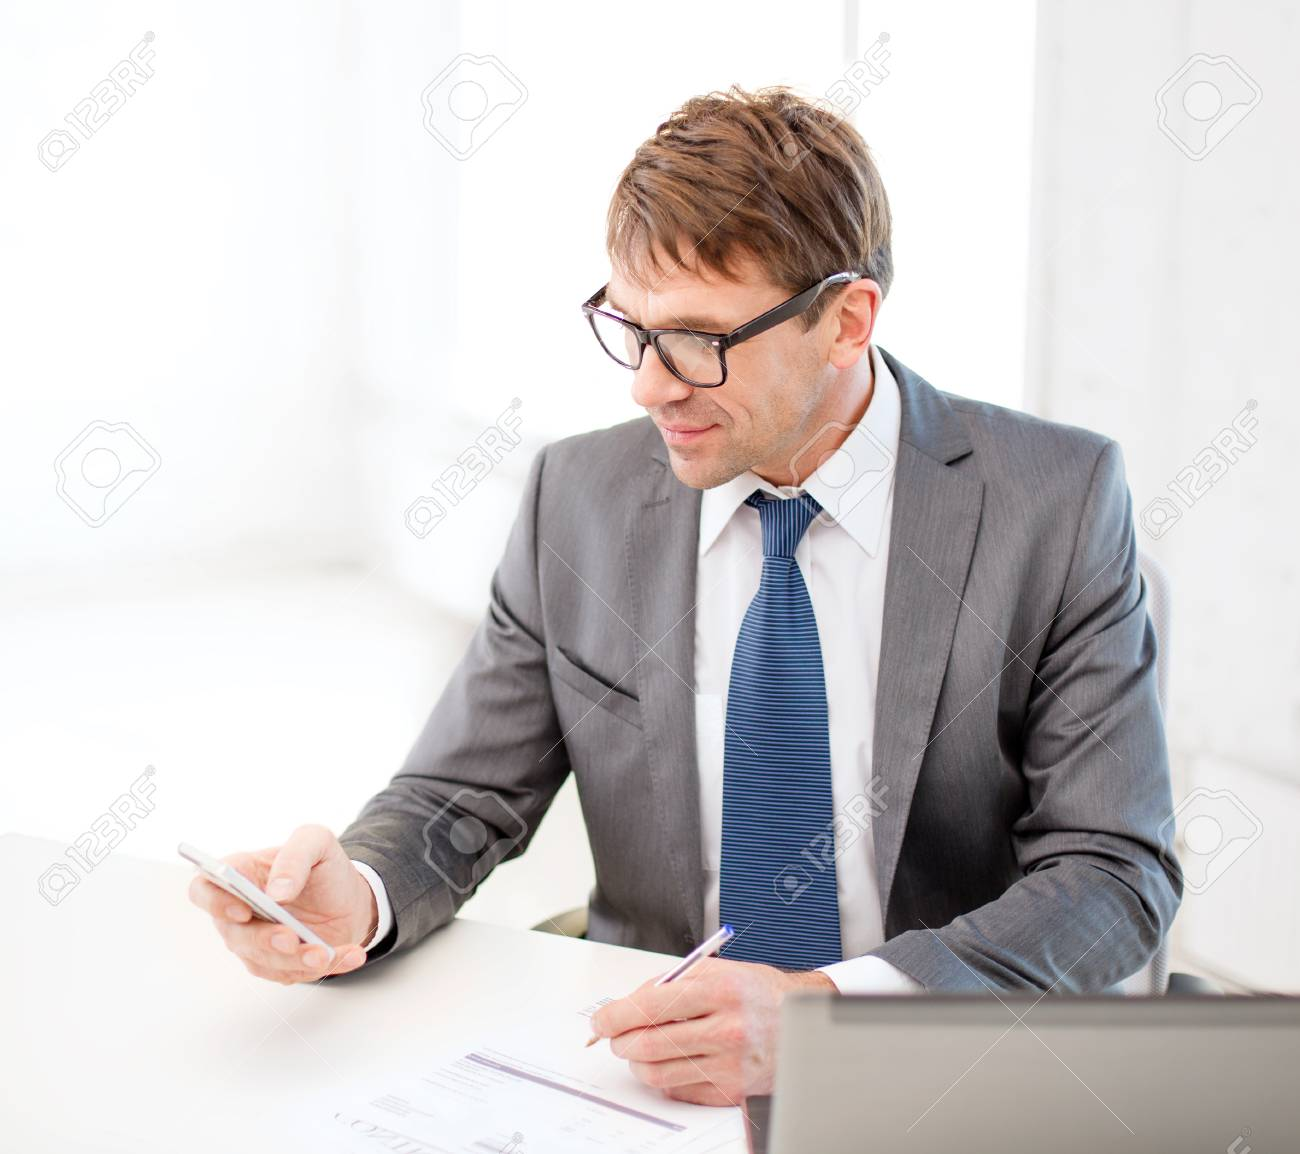 technology, business, internet and office concept - handsome businessman working with laptop computer and smartphone Stock Photo - 26175554